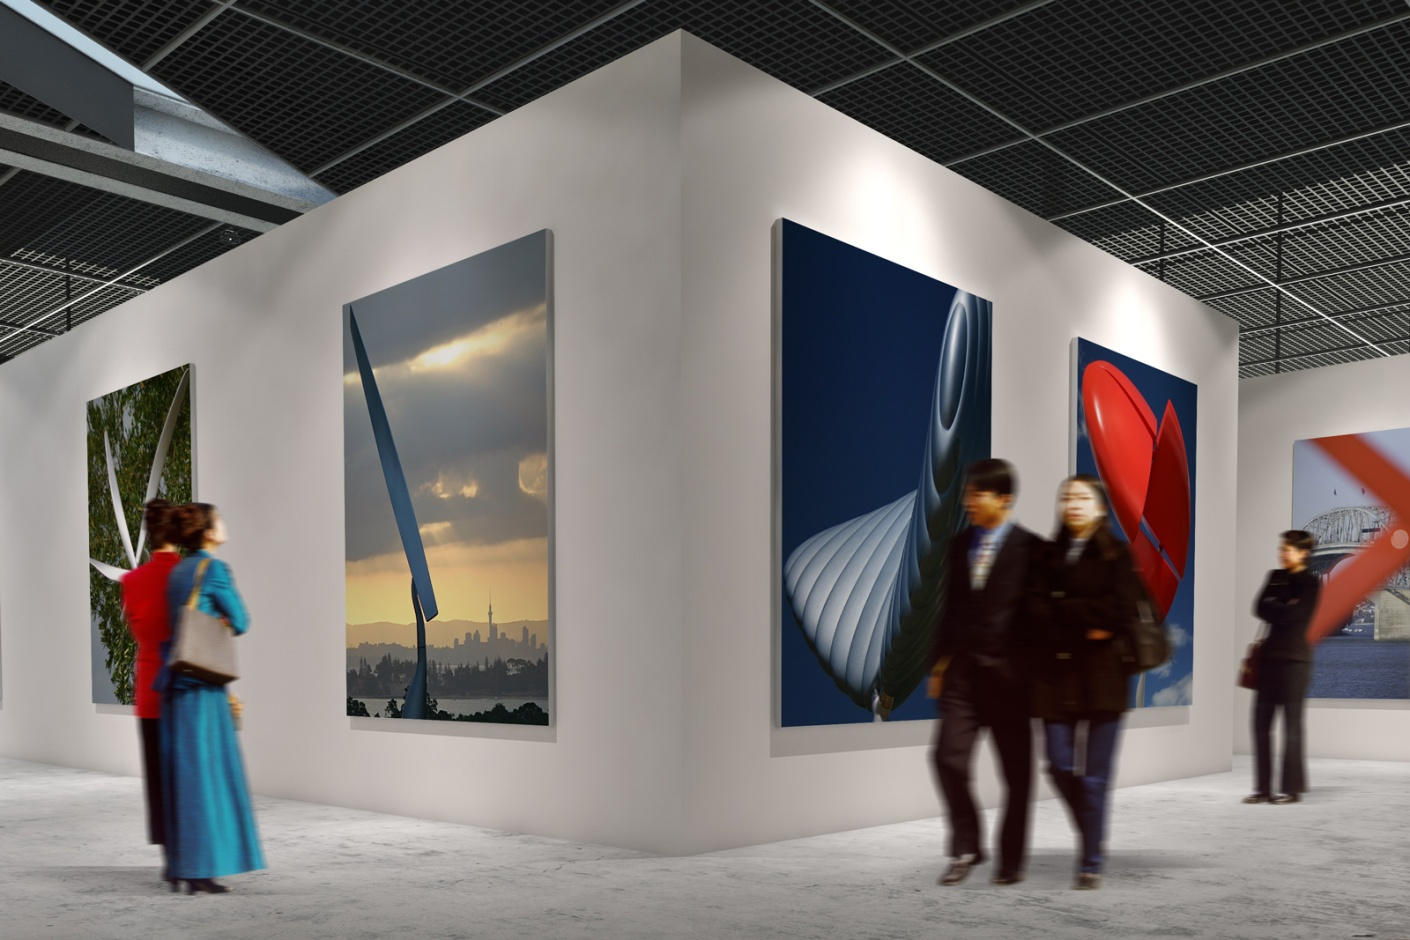 Gallery mock-up of shots from the Kinetics portfolio.